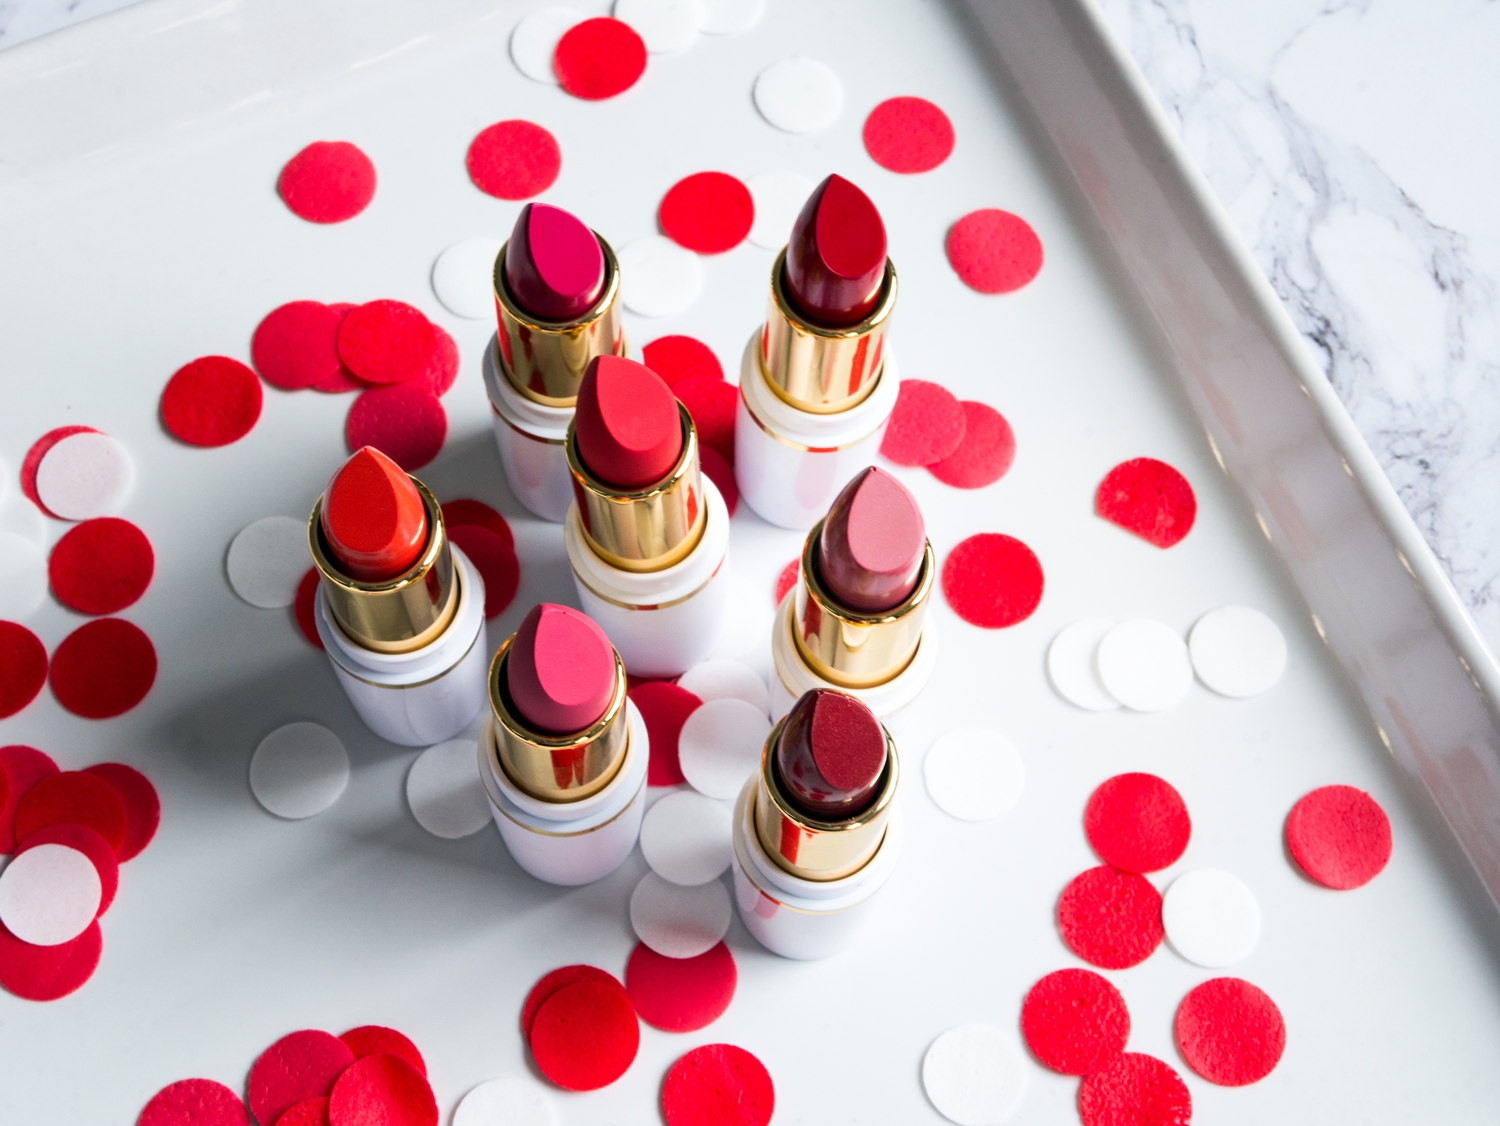 AA Wings of Colors Comfort Matte i Color Creme Lipstick 40 Cream Pink, 47 Orange Red, 48 Red Wine